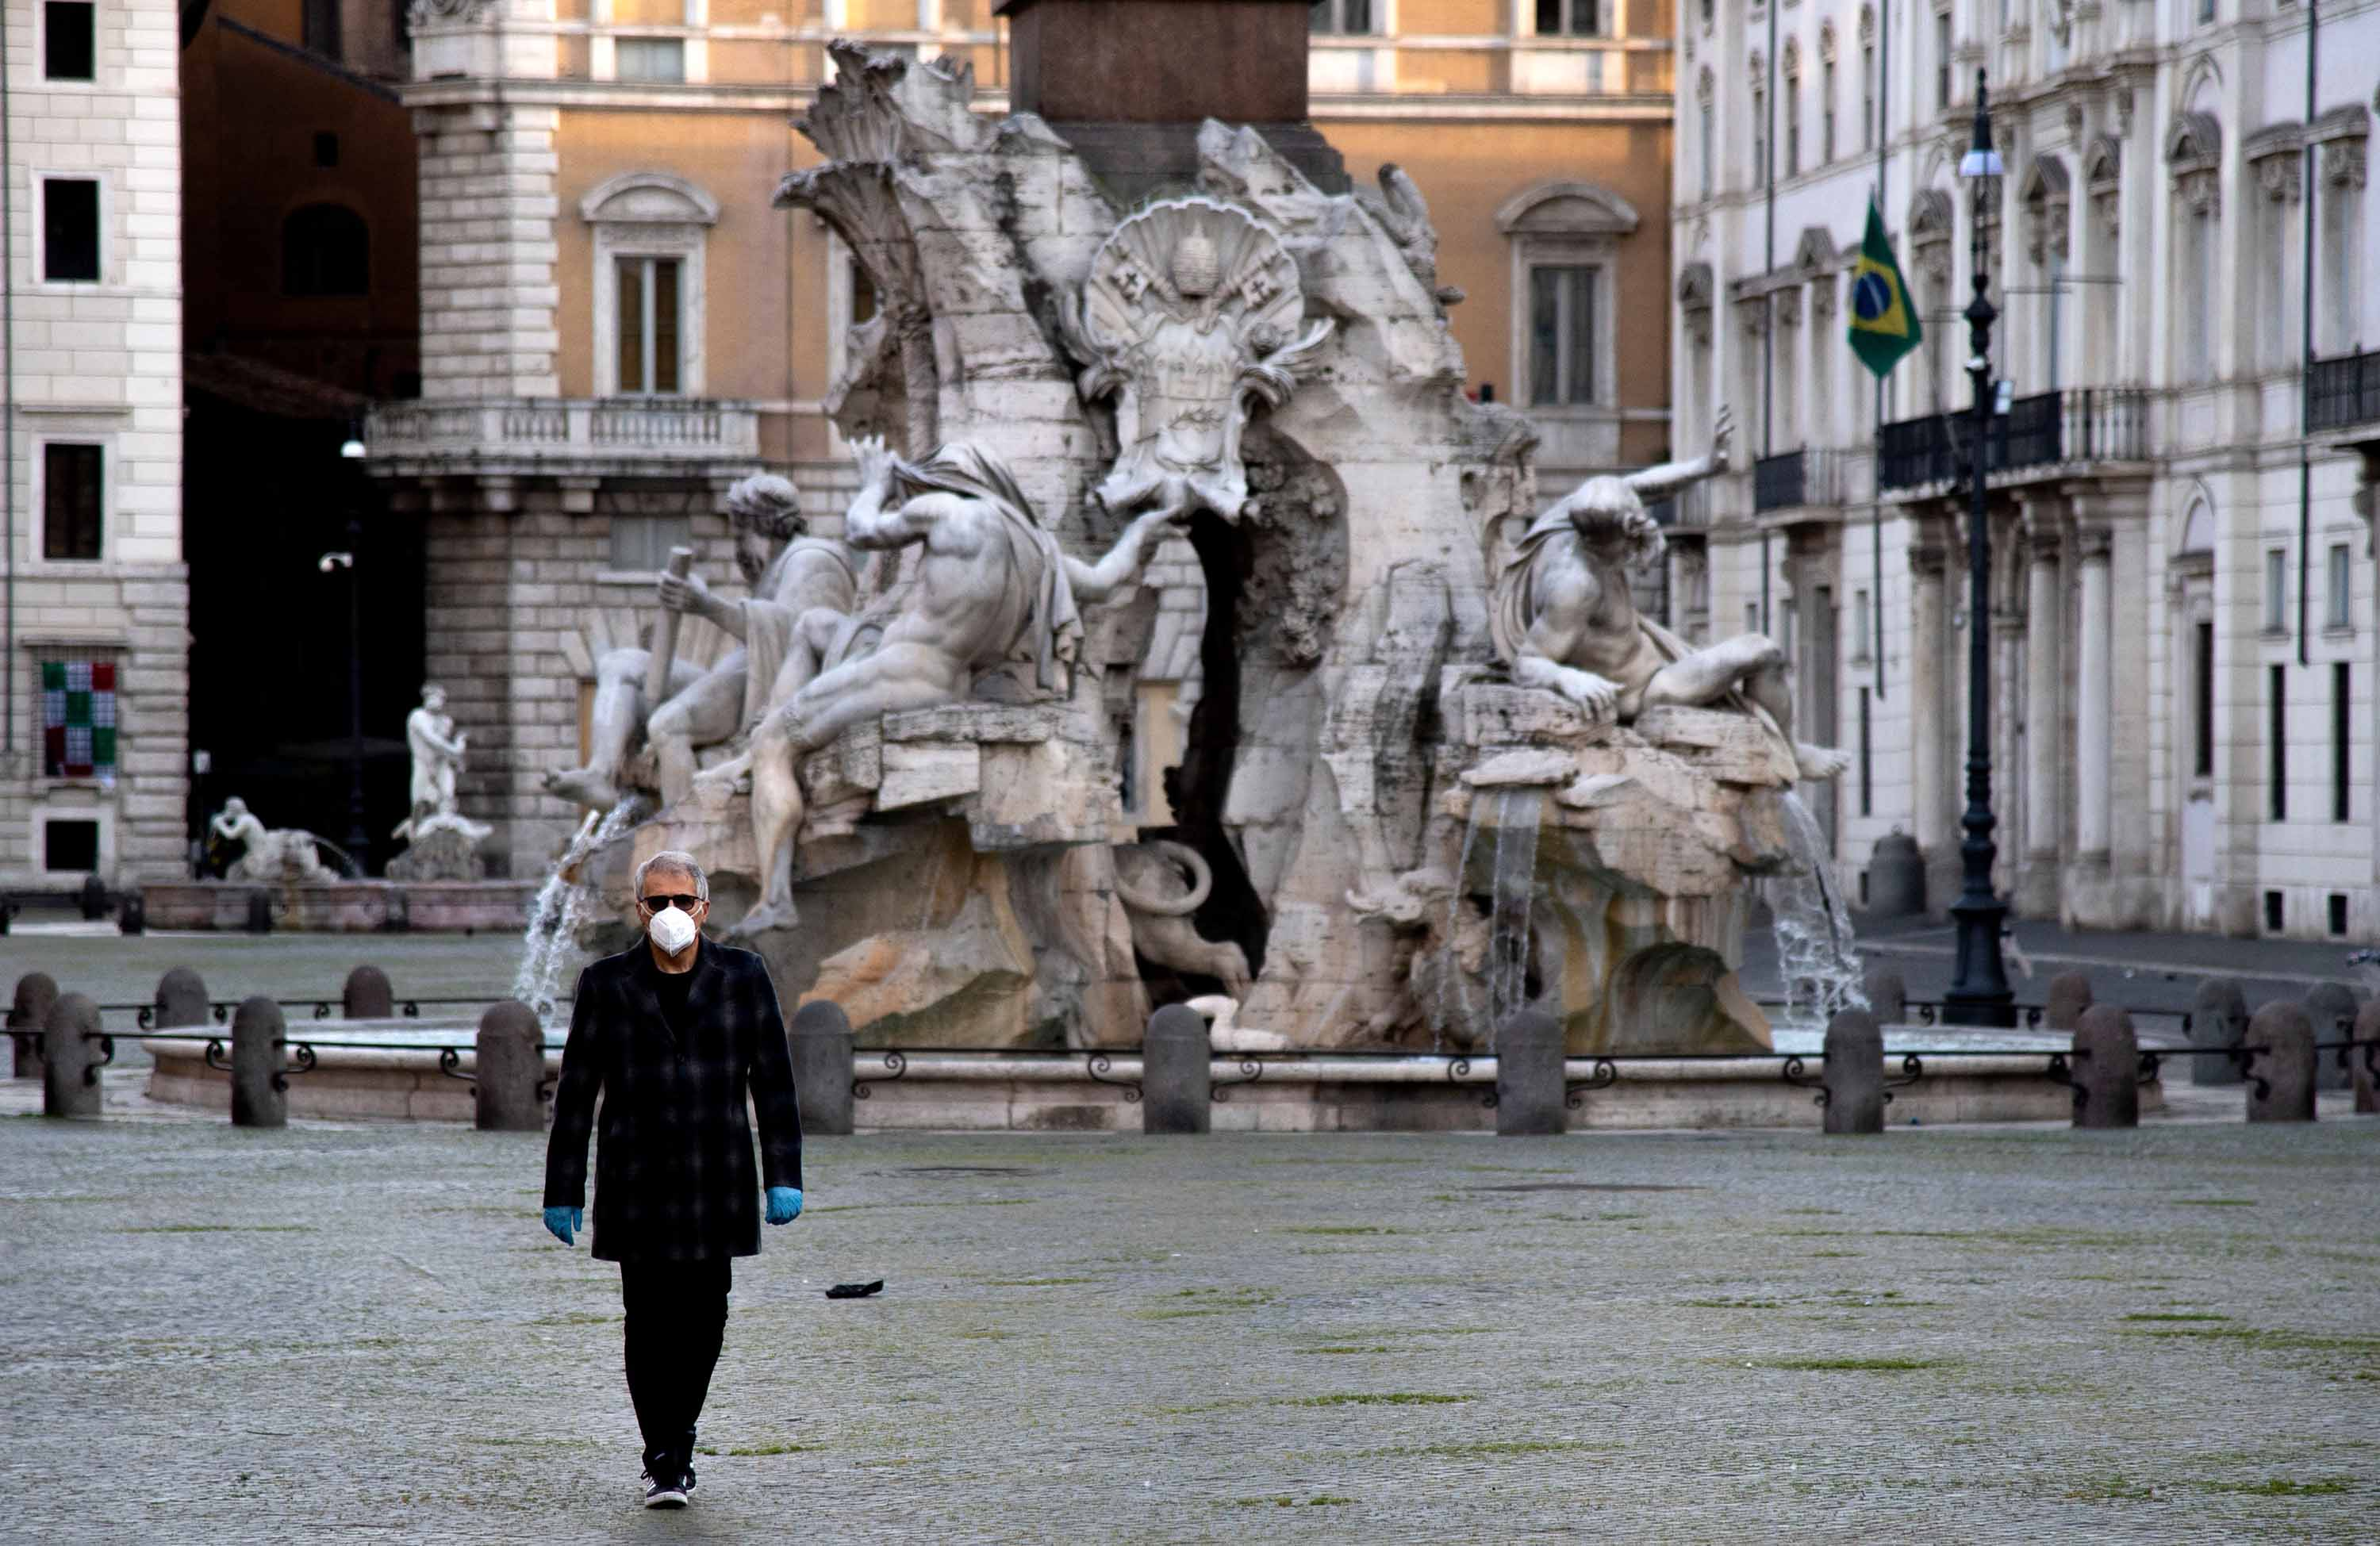 A man walks in Piazza Navona in Rome on April 16.